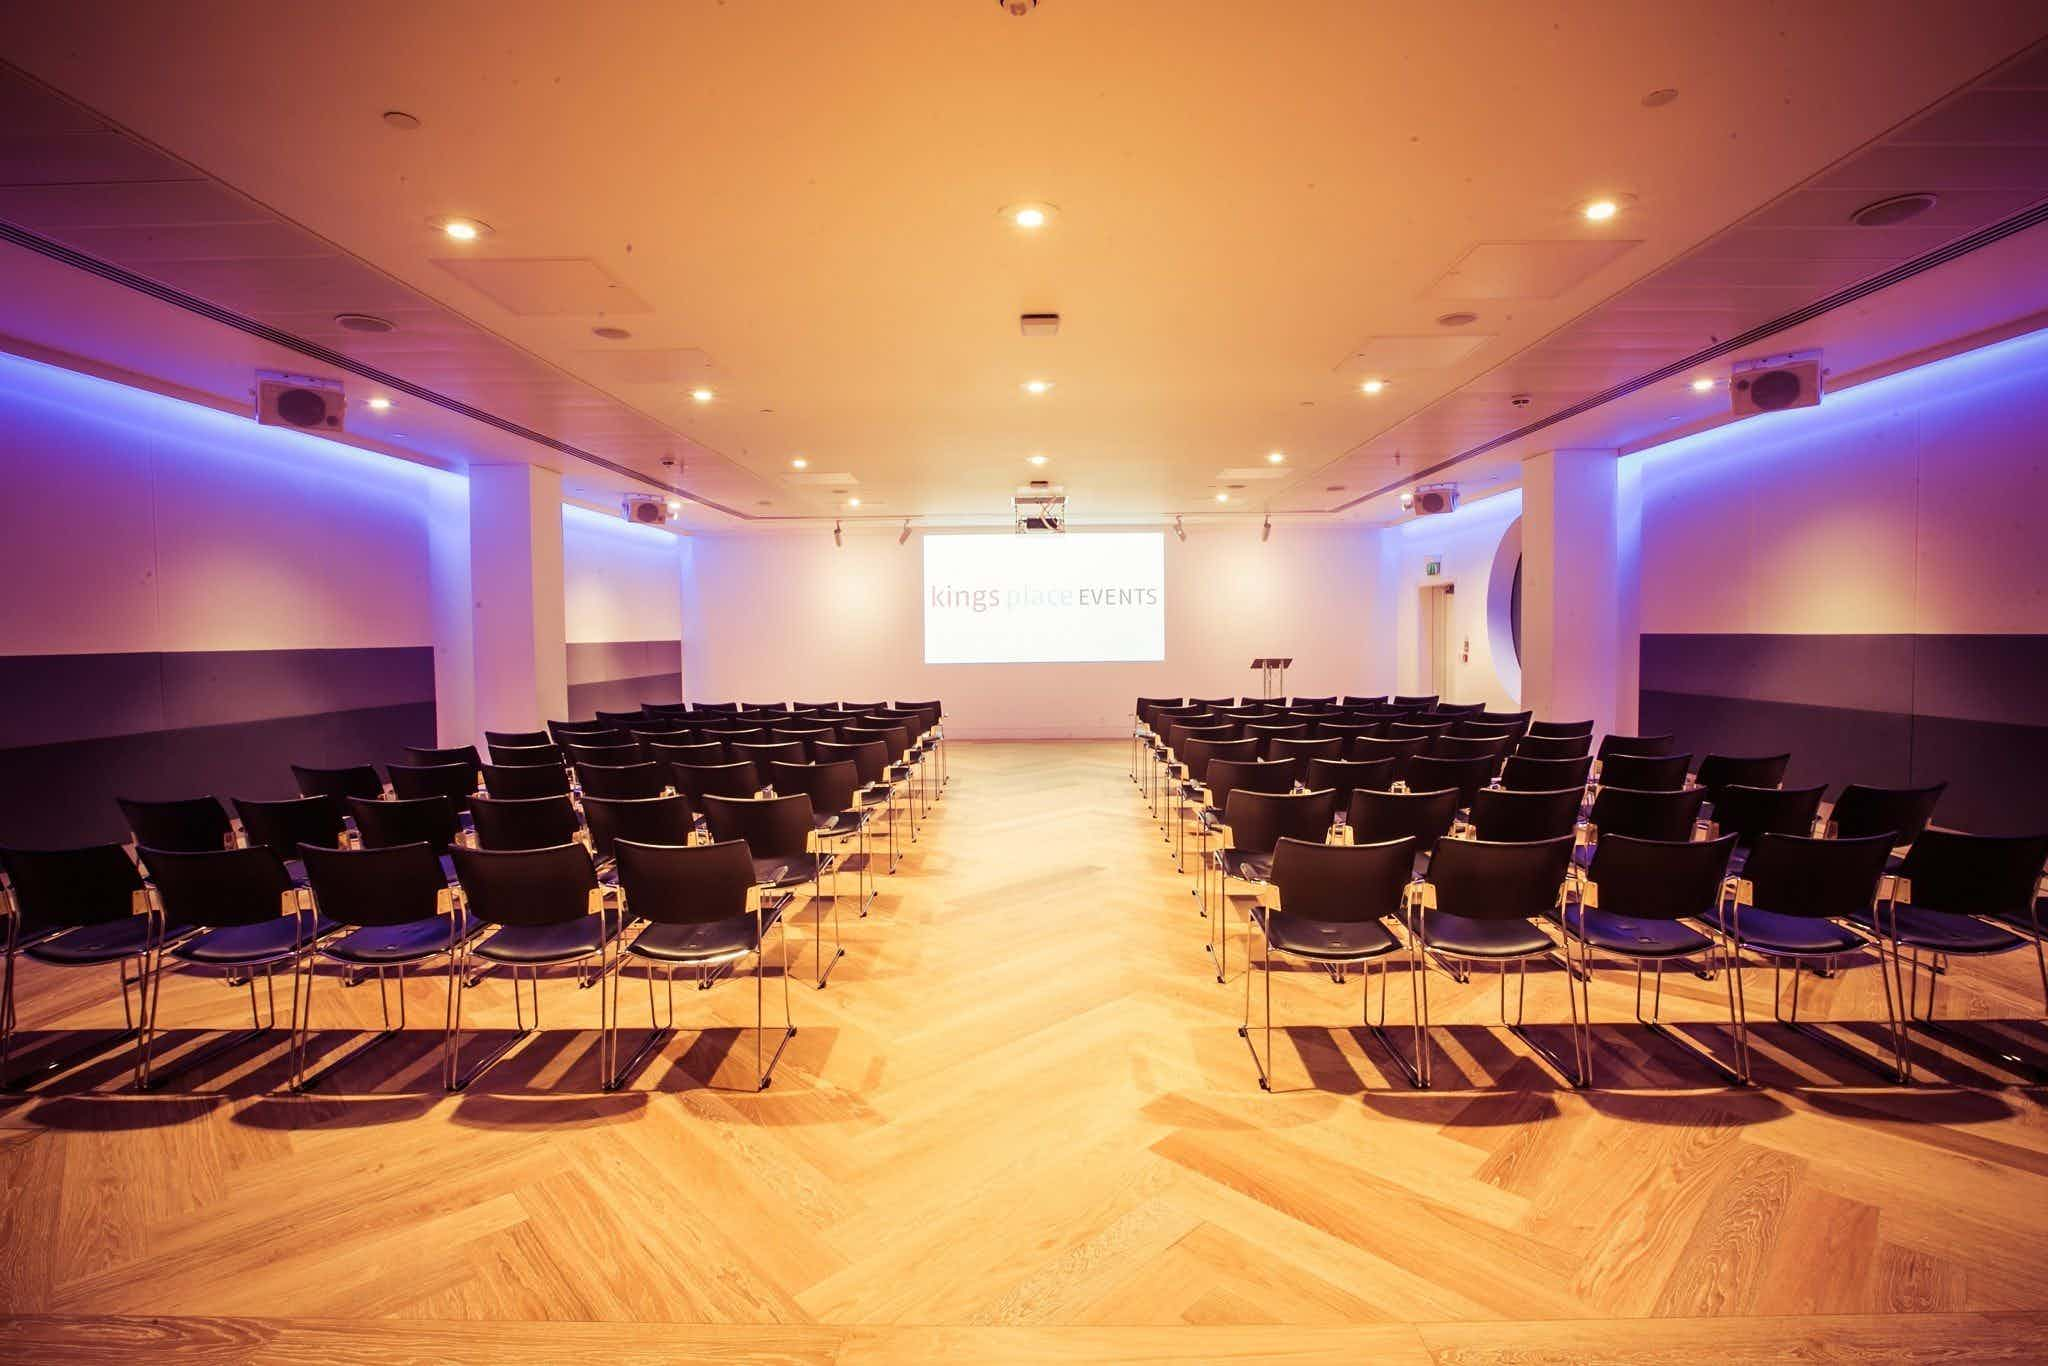 St Pancras Room, King Place Events